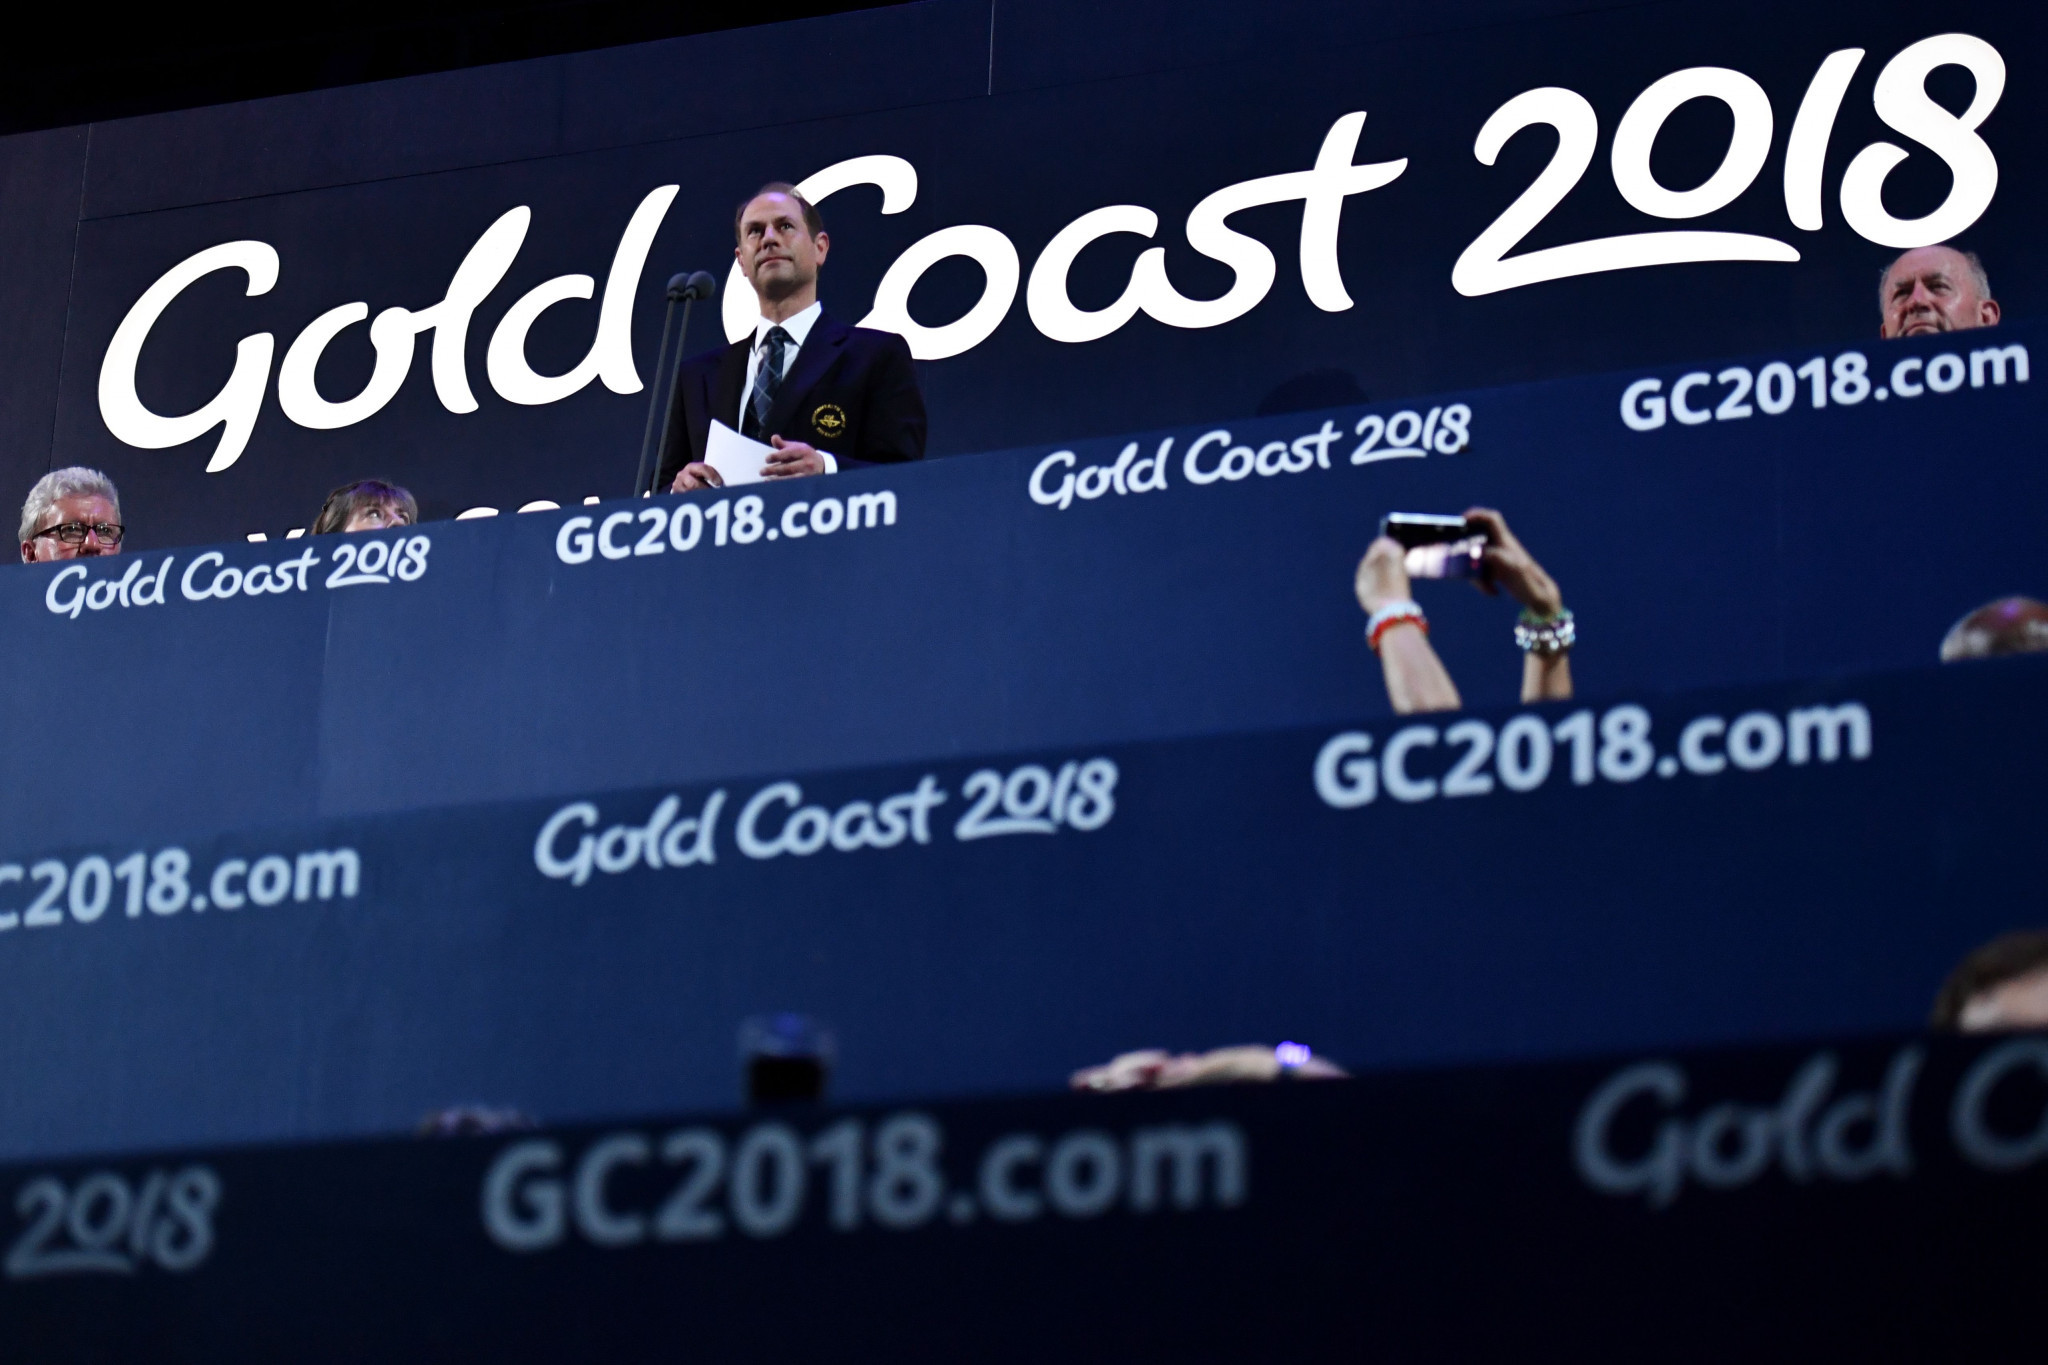 Gold Coast 2018 miss own revenue target, report says